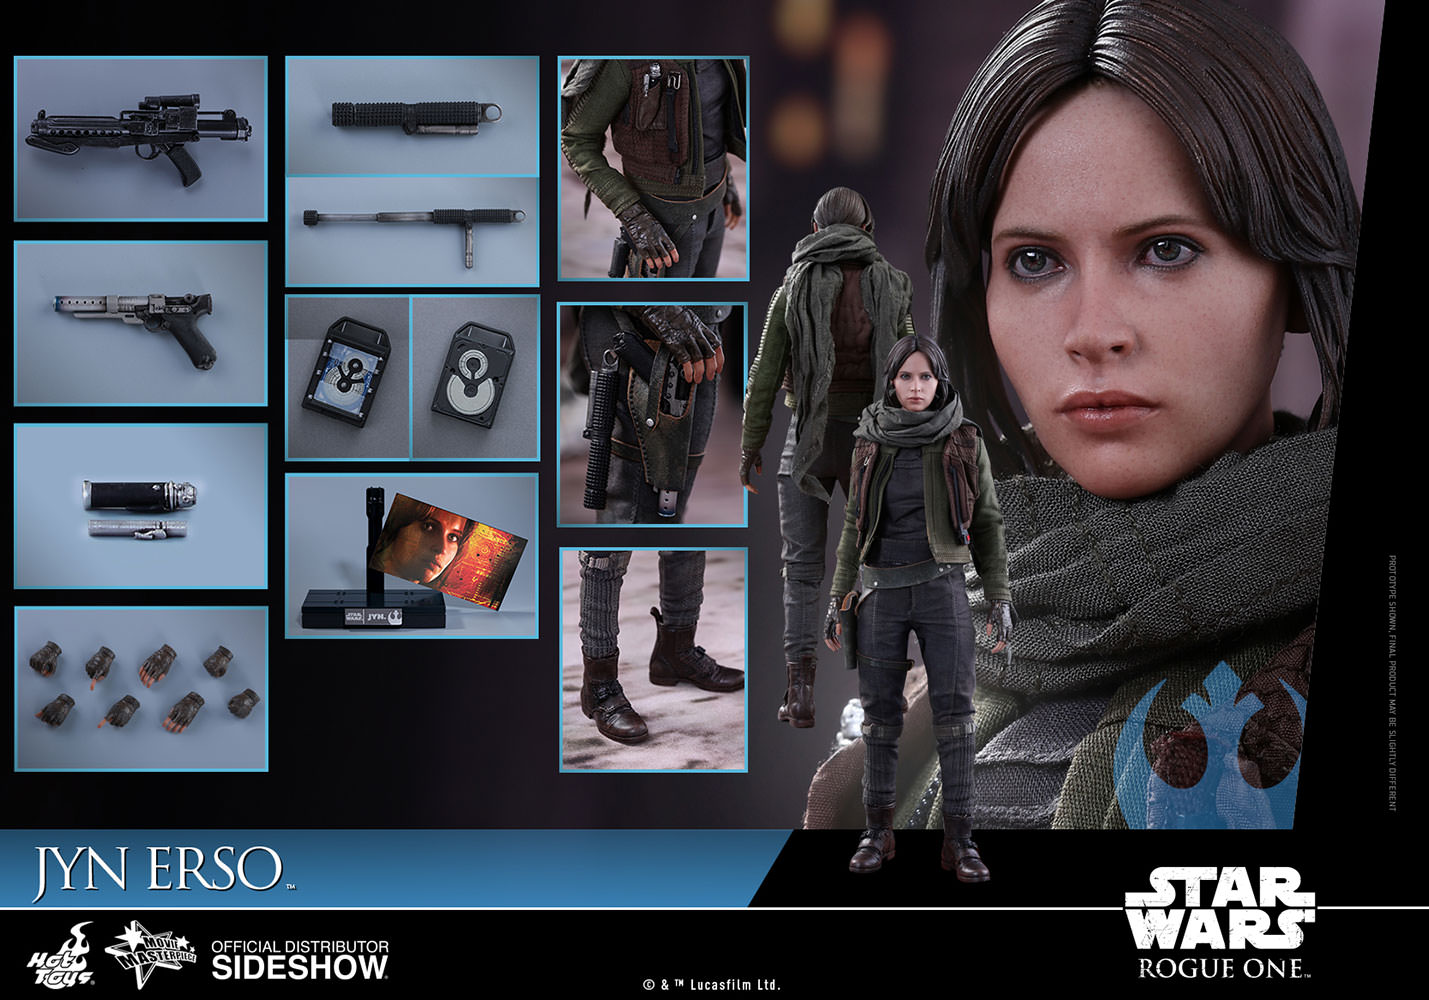 star-wars-rogue-one-jyn-erso-sixth-scale